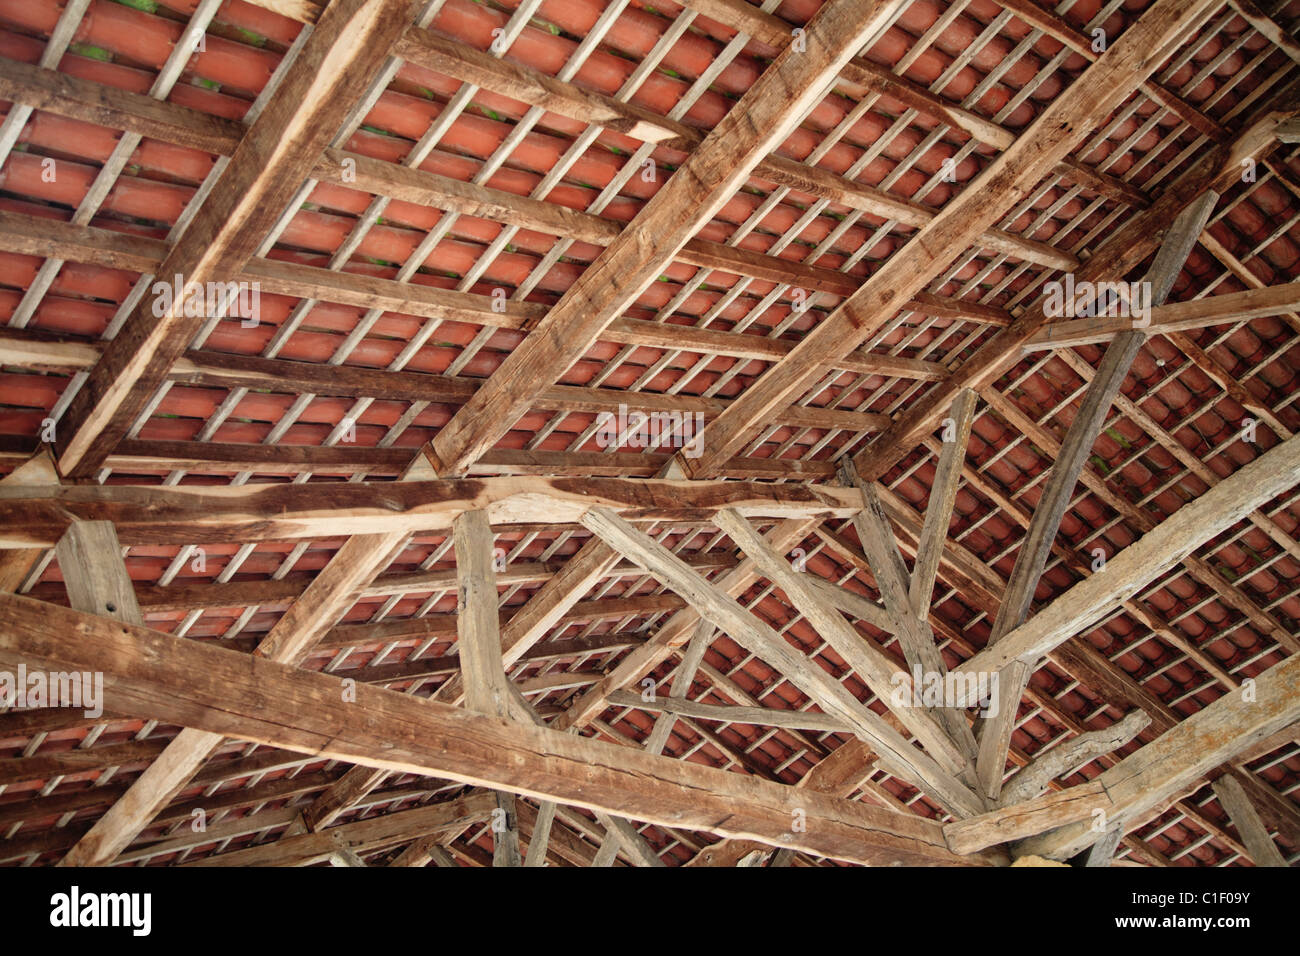 Beams And Rafters On The Underside Of The Roof Of The Covered Market At  Villefranche